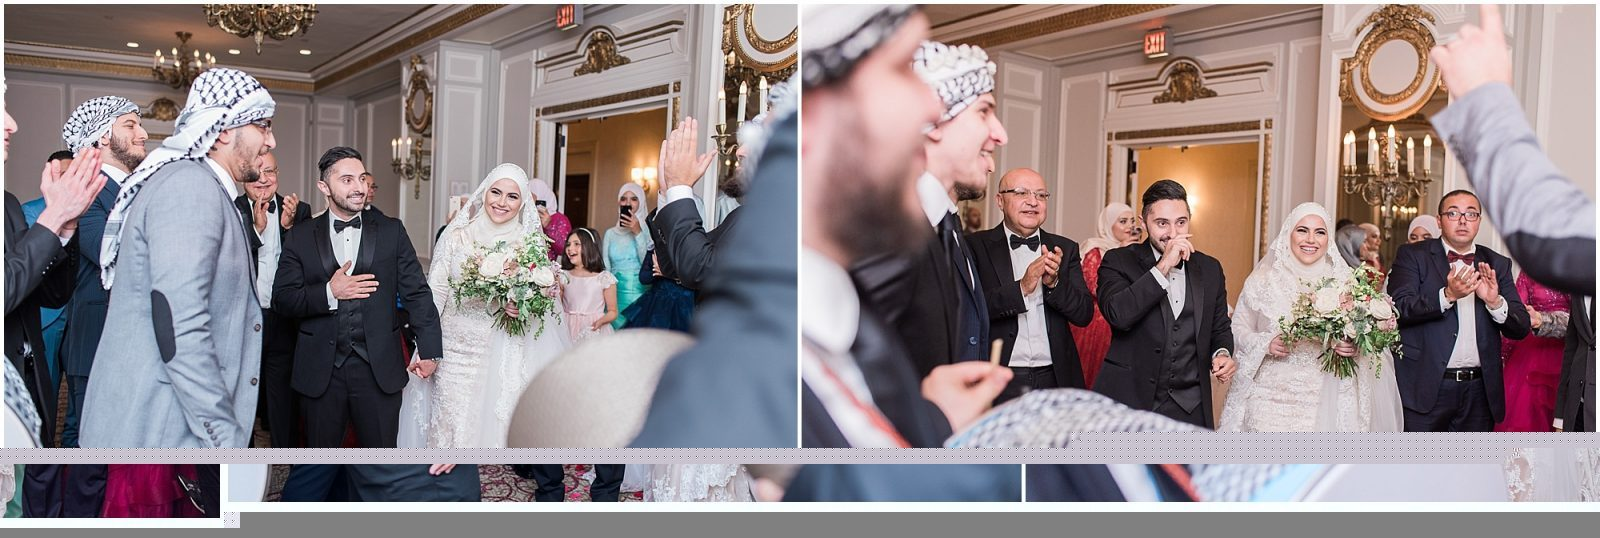 0076 Chateau Laurier Wedding - Hijabi Bride - Sireen & Anas- Ottawa_PhotosbyEmmaH.jpg